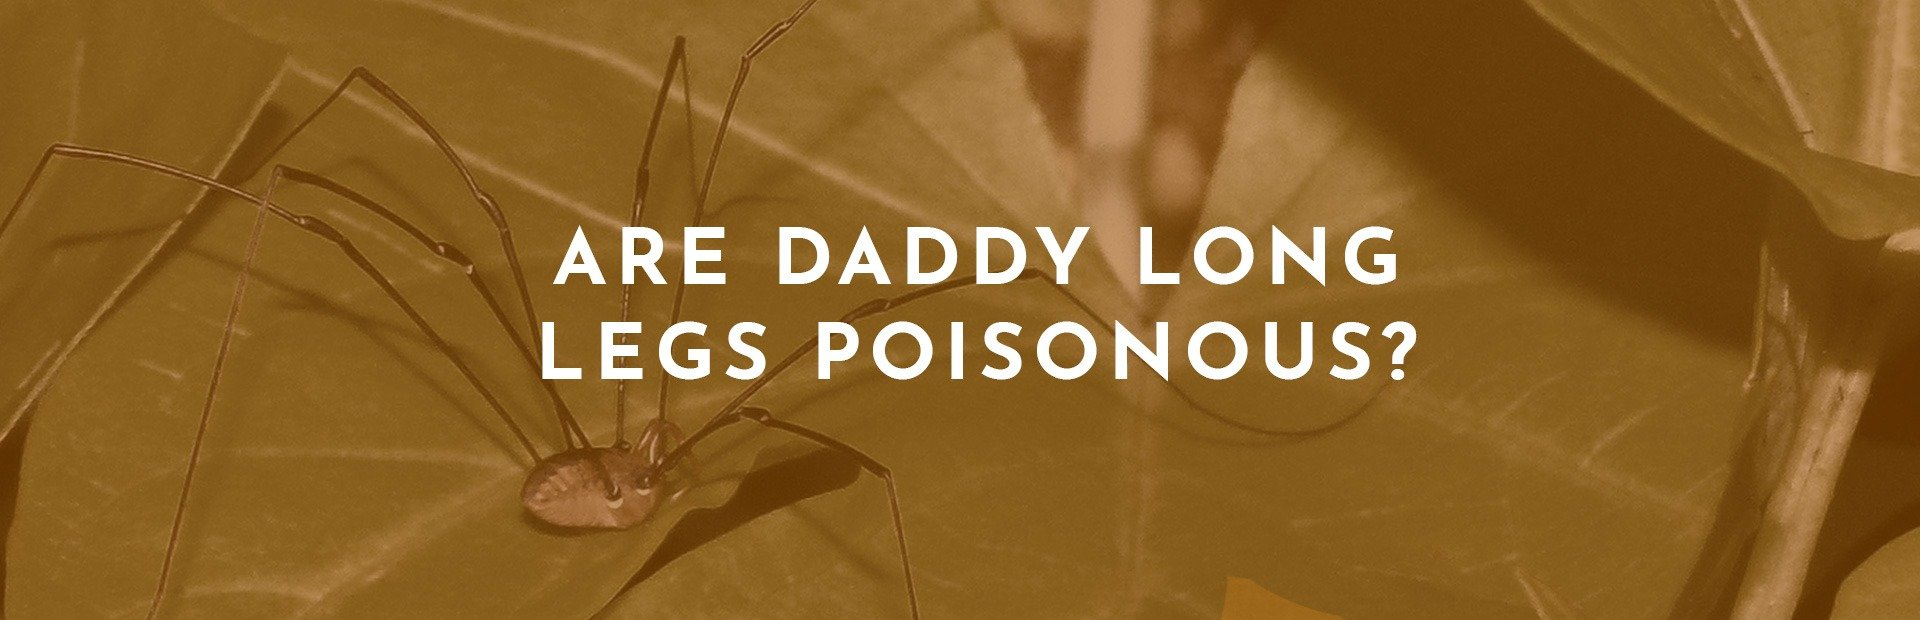 Are Daddy Long Legs Poisonous?